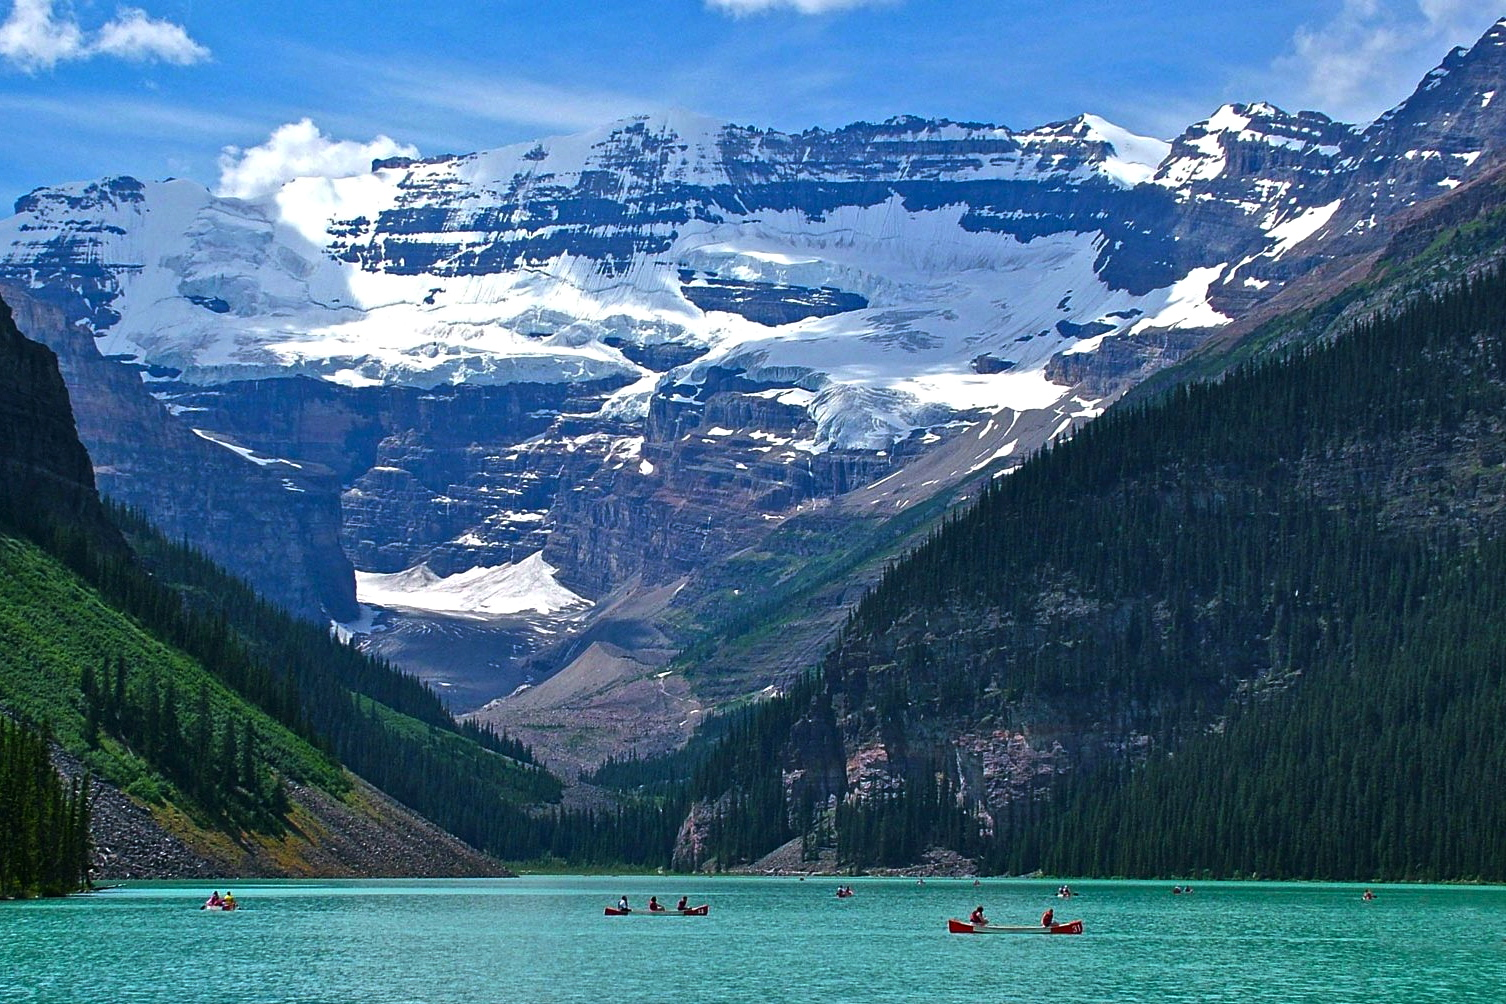 The Canadian wilds of paddle boarding in Lake Louise Canada